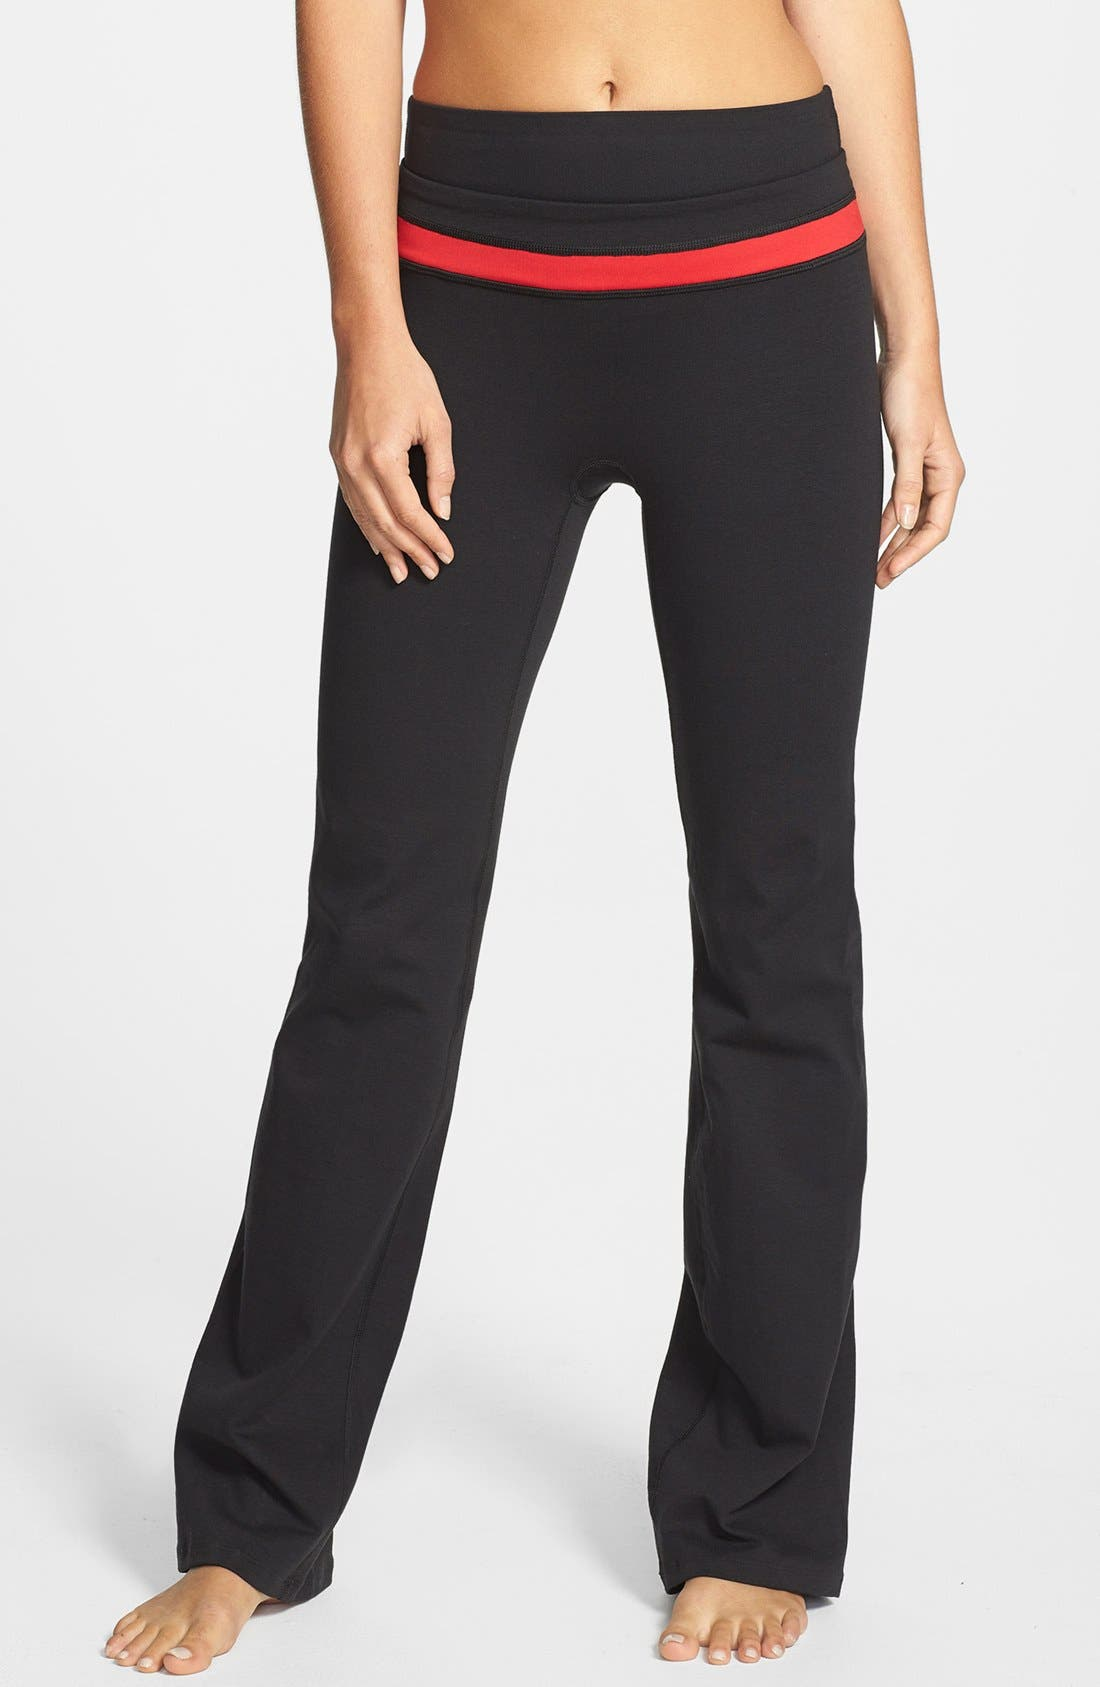 Alternate Image 1 Selected - SPANX® 'Power Color Band' Workout Pants